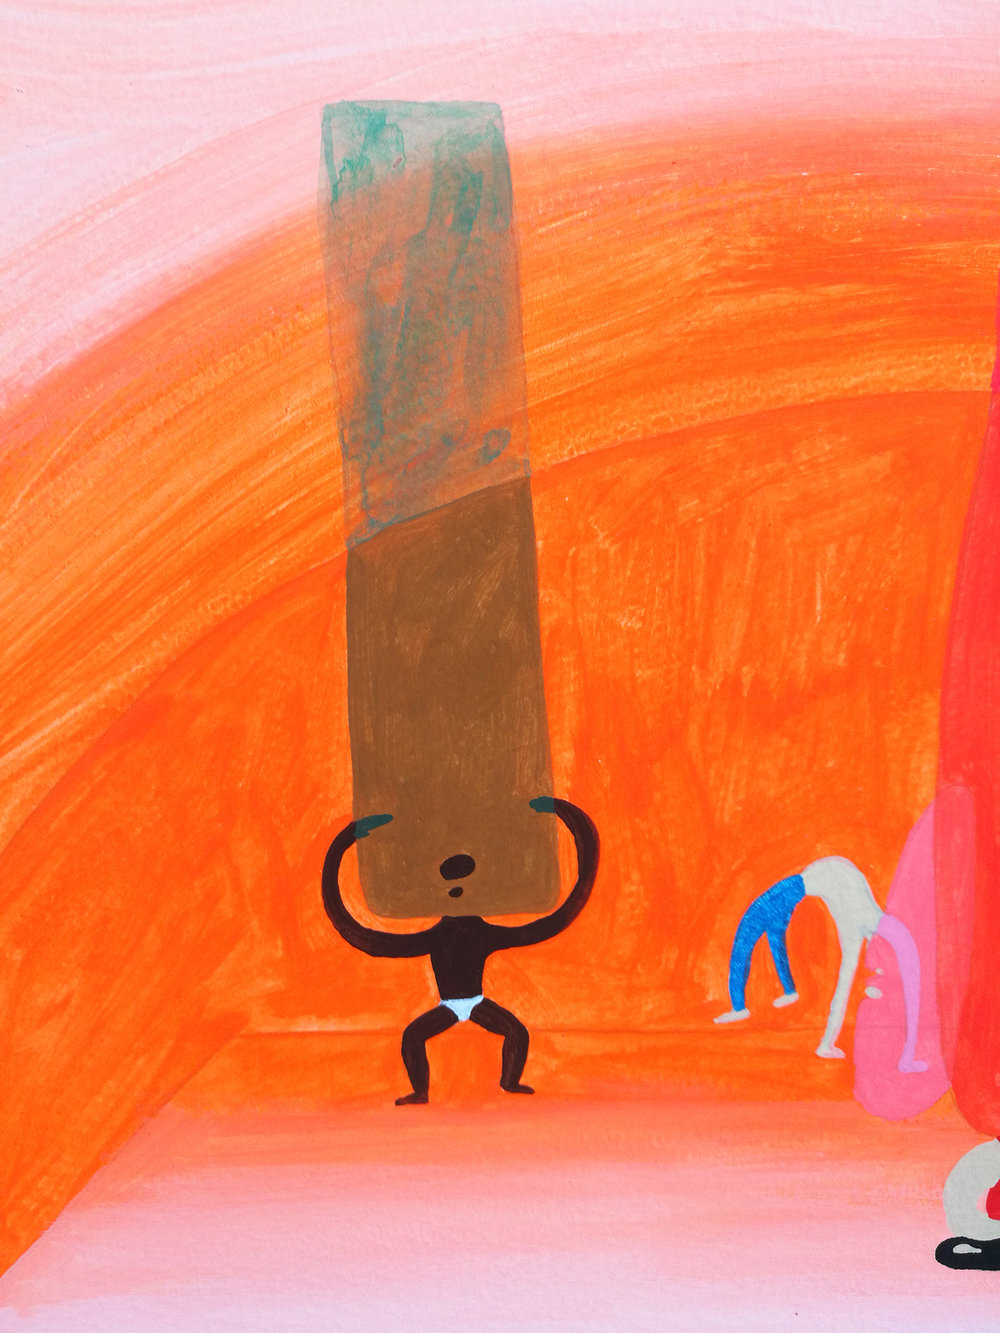 Peter McDonald_Hot Yoga_Acrylic gouache on paper_30x21cm_2013_detailshot.jpg